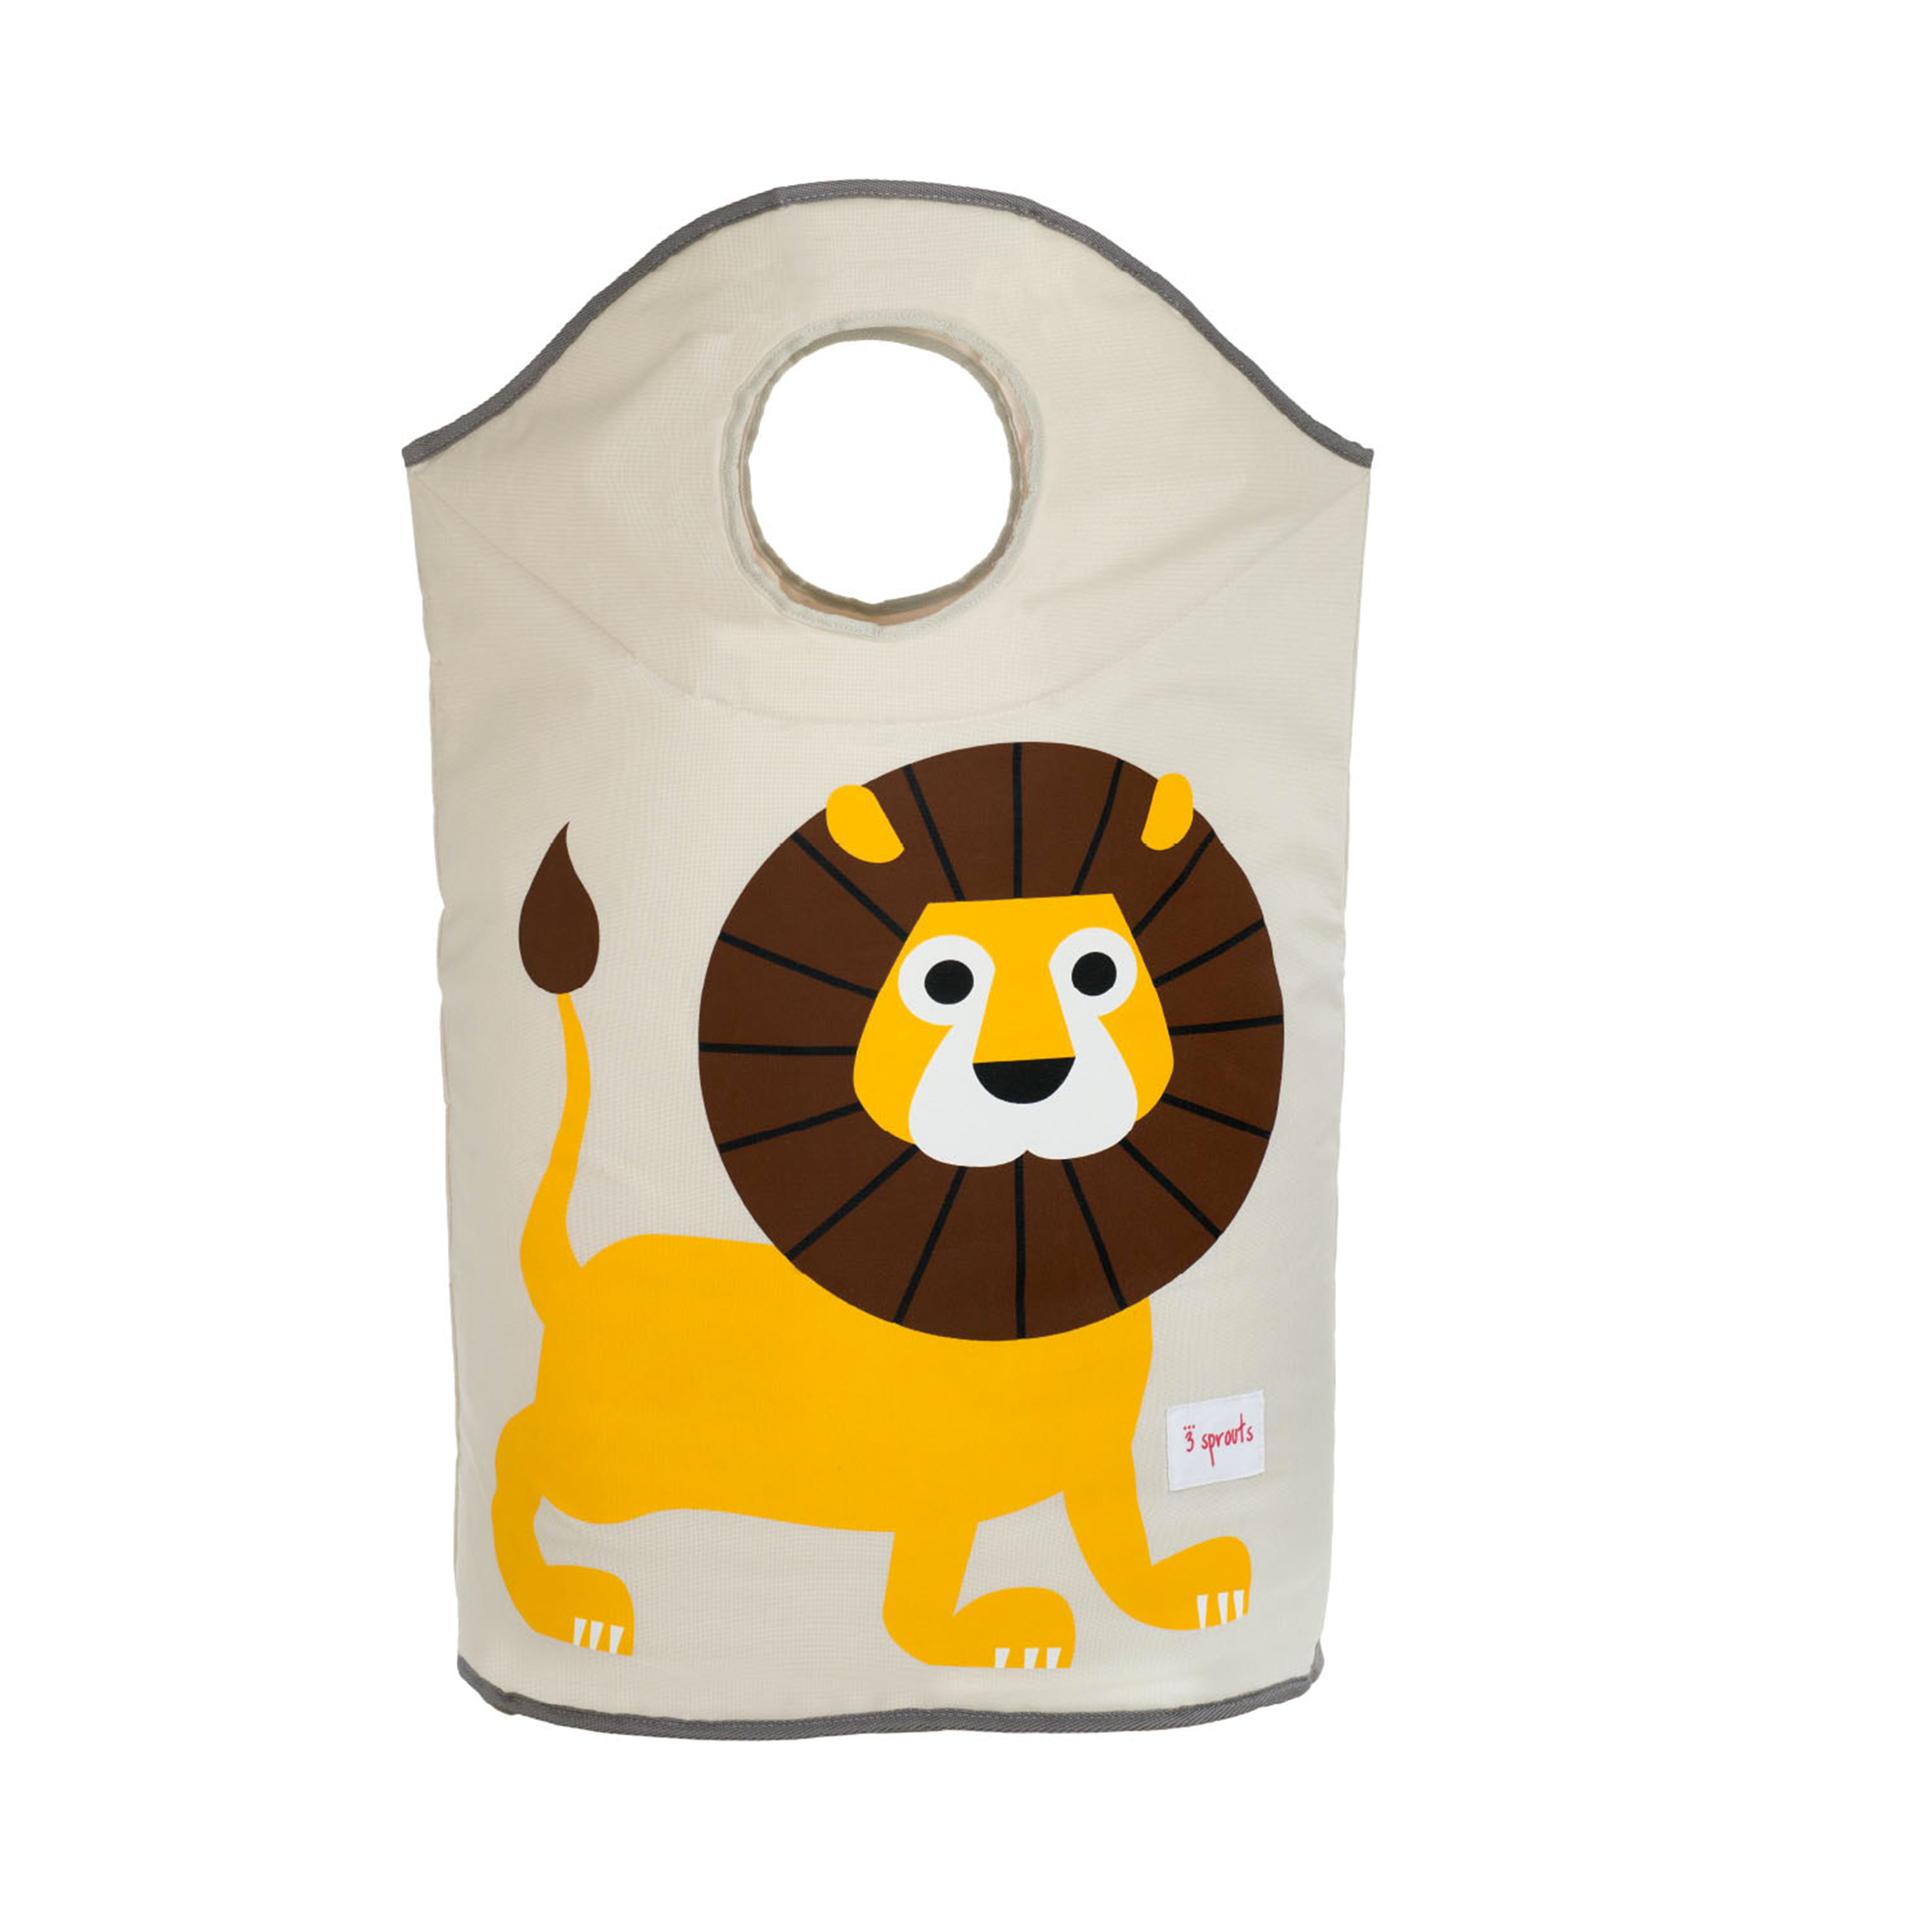 3 Sprouts - Laundry Hamper - Yellow Lion